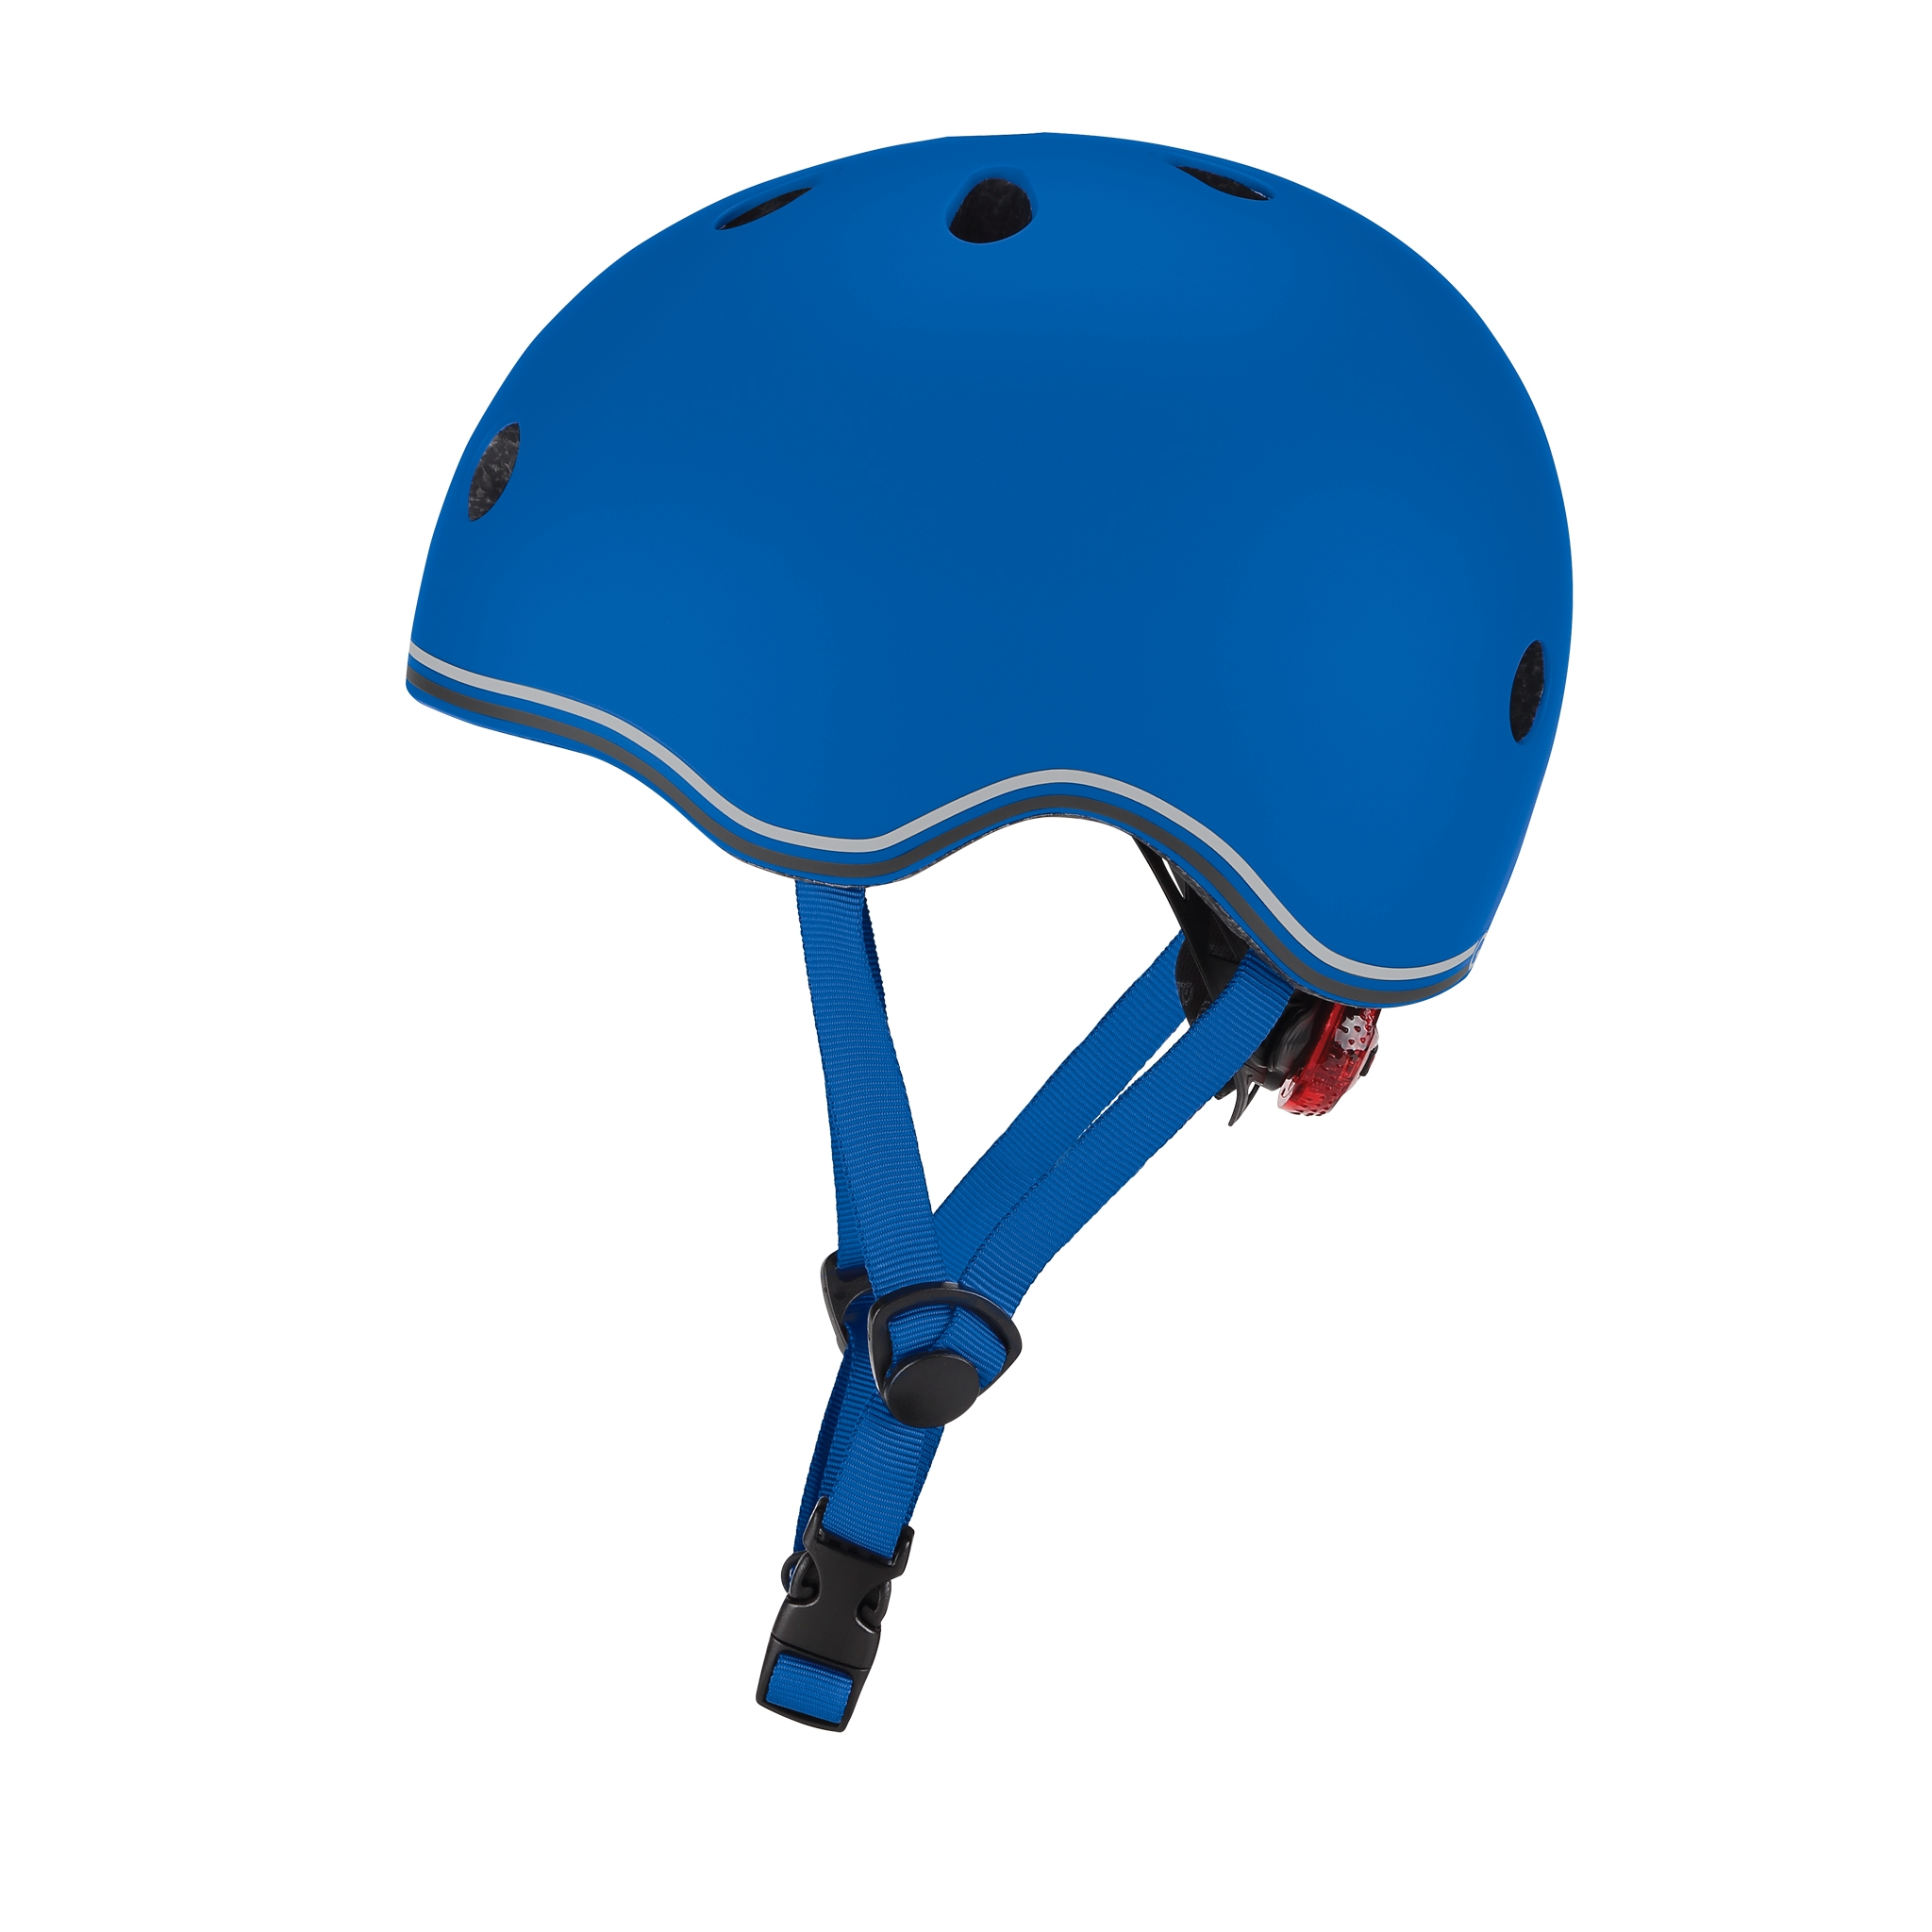 EVO-helmets-scooter-helmets-for-toddlers-with-adjustable-helmet-knob-navy-blue